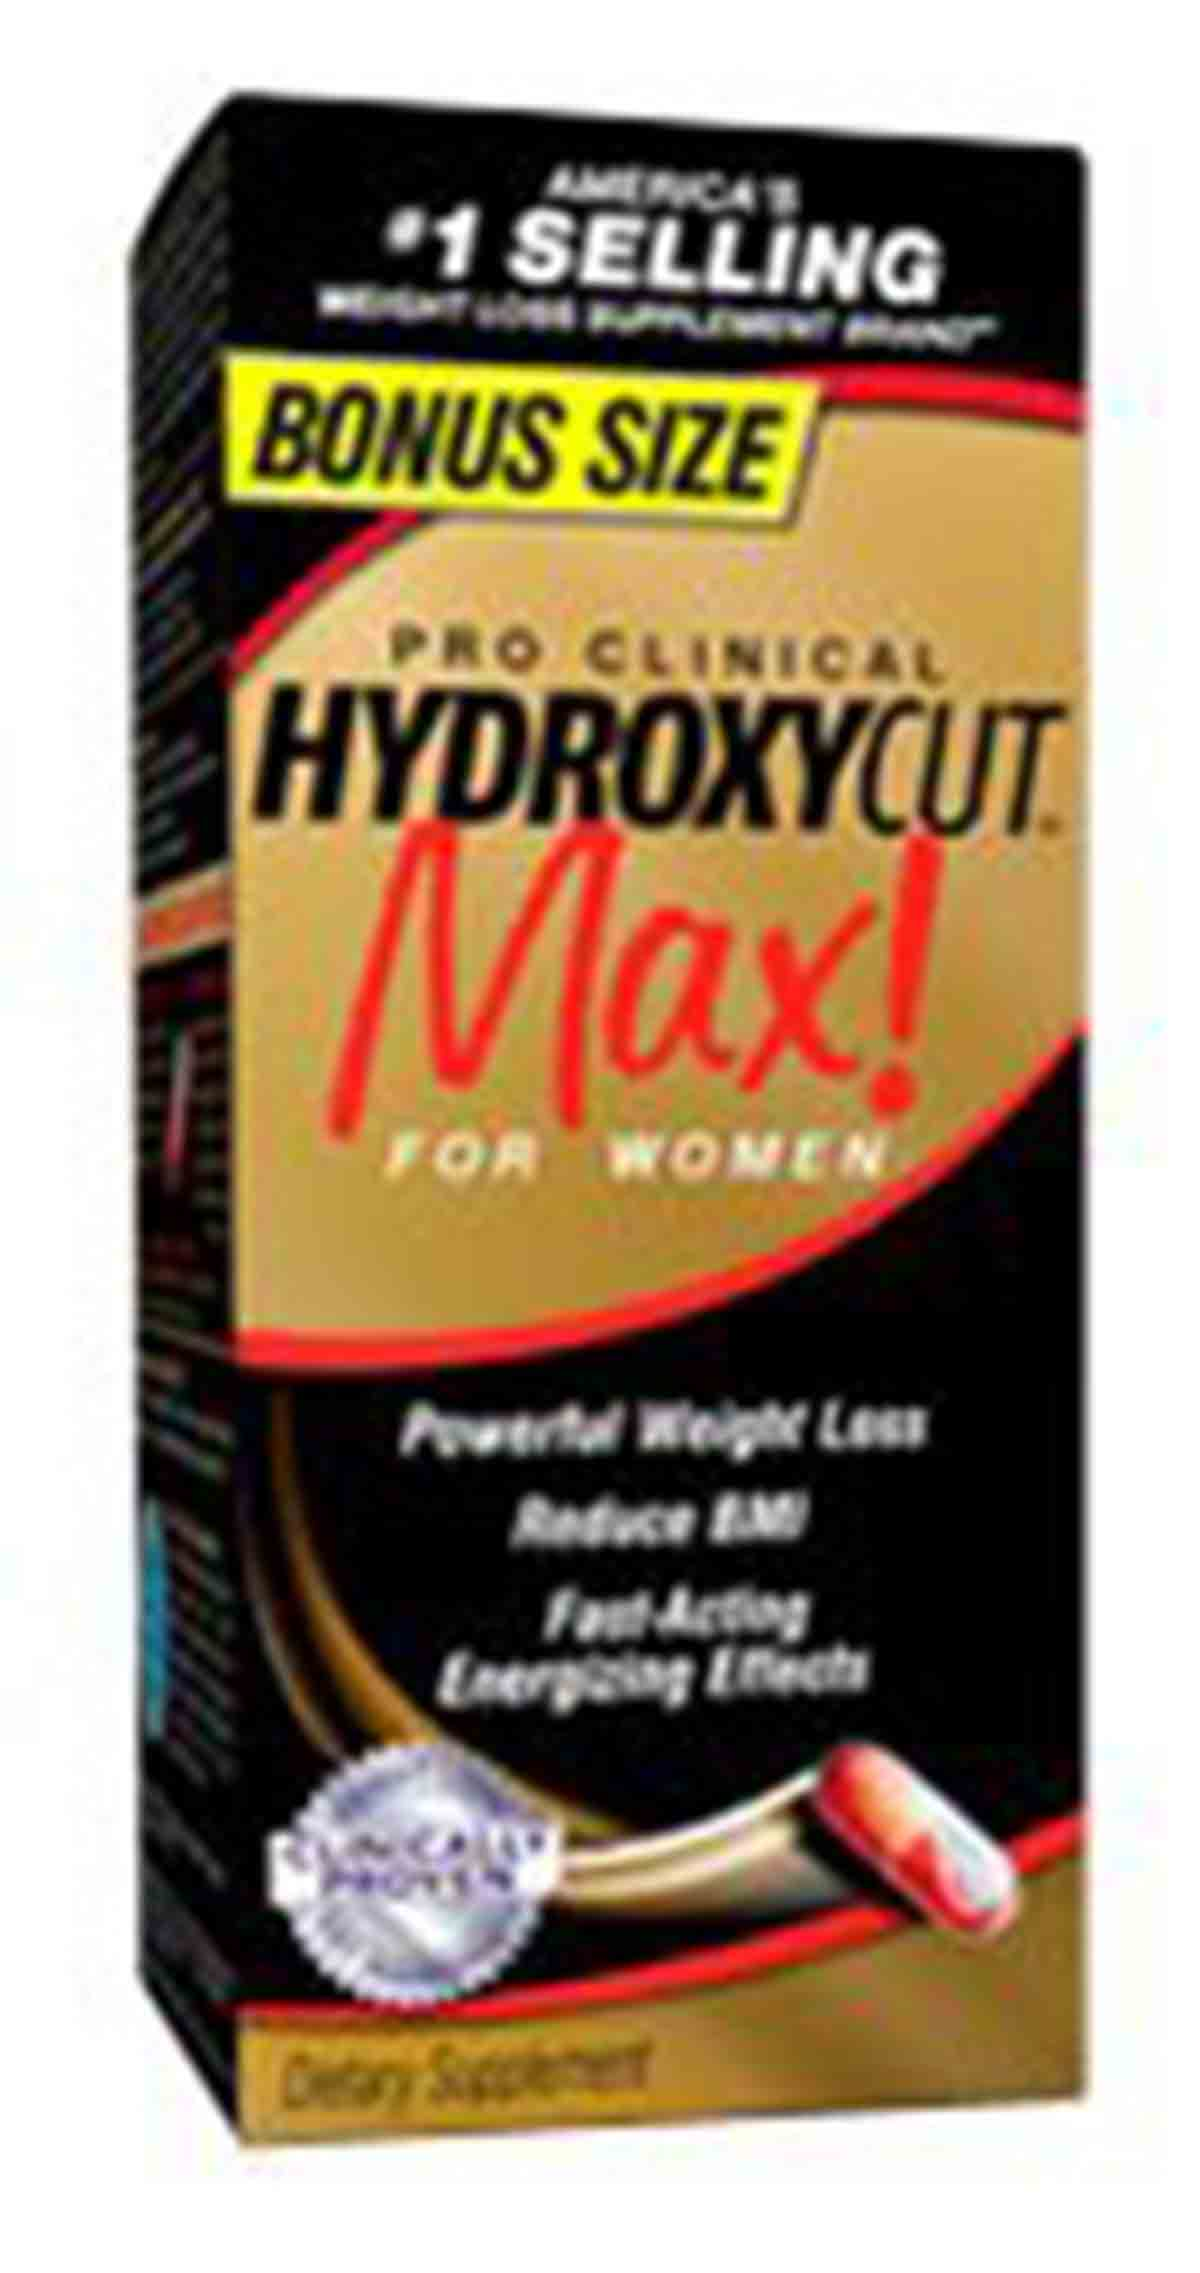 Pro Clinical Hydroxycut Max